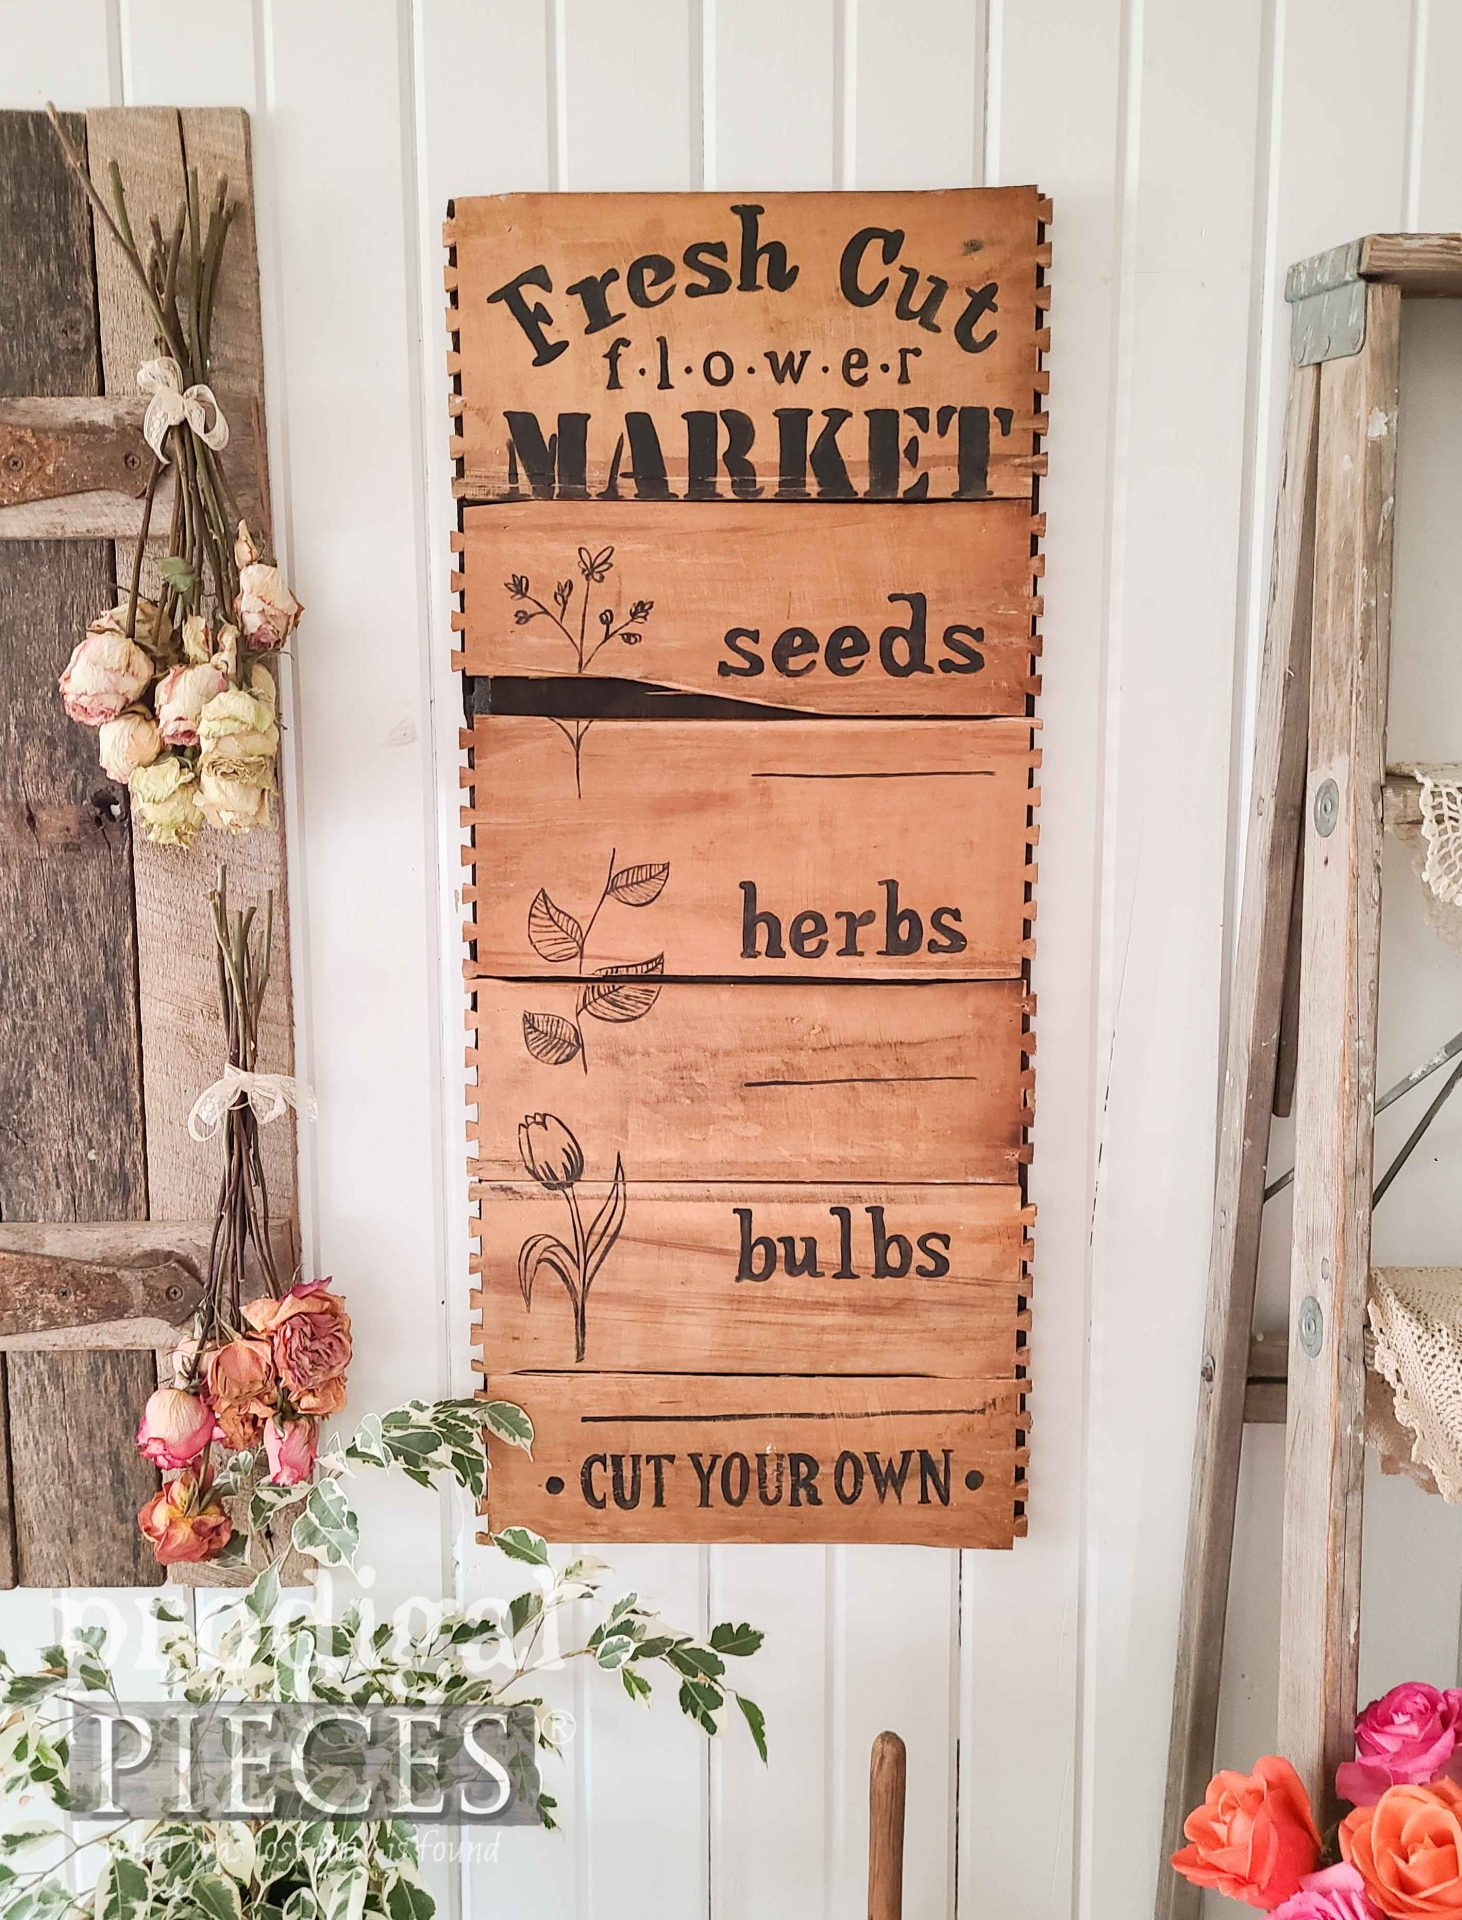 Hand-Painted Flower Sign from Broken Drawers Upcycled into Decor by Larissa of Prodigal Pieces | prodigalpieces.com #prodigalpieces #home #upcycled #diy #farmhouse